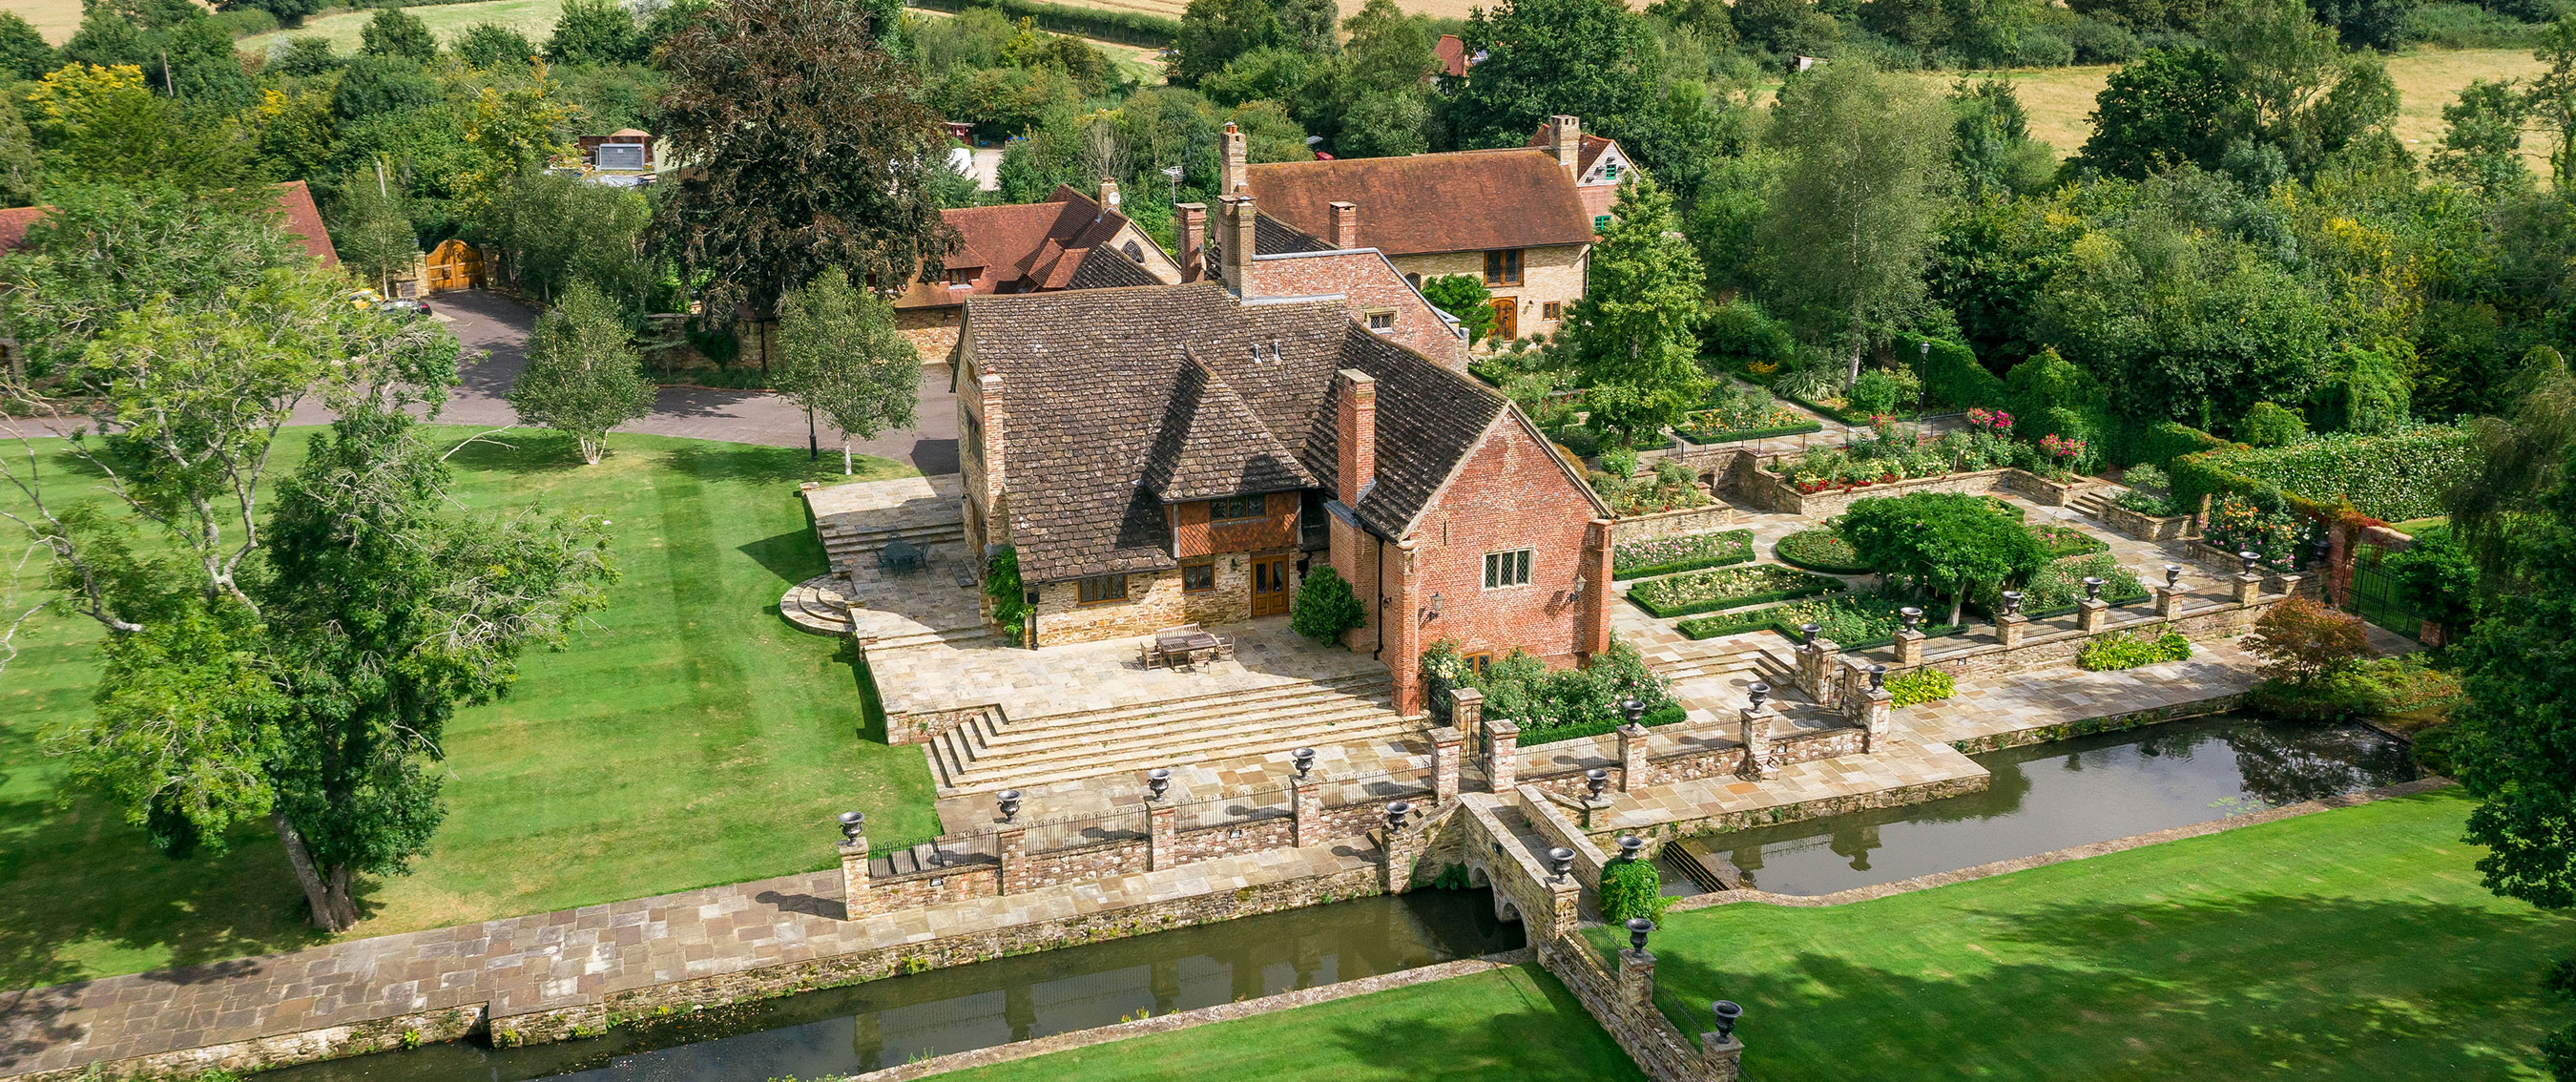 Step back in time with the Grade II-listed Chesworth House